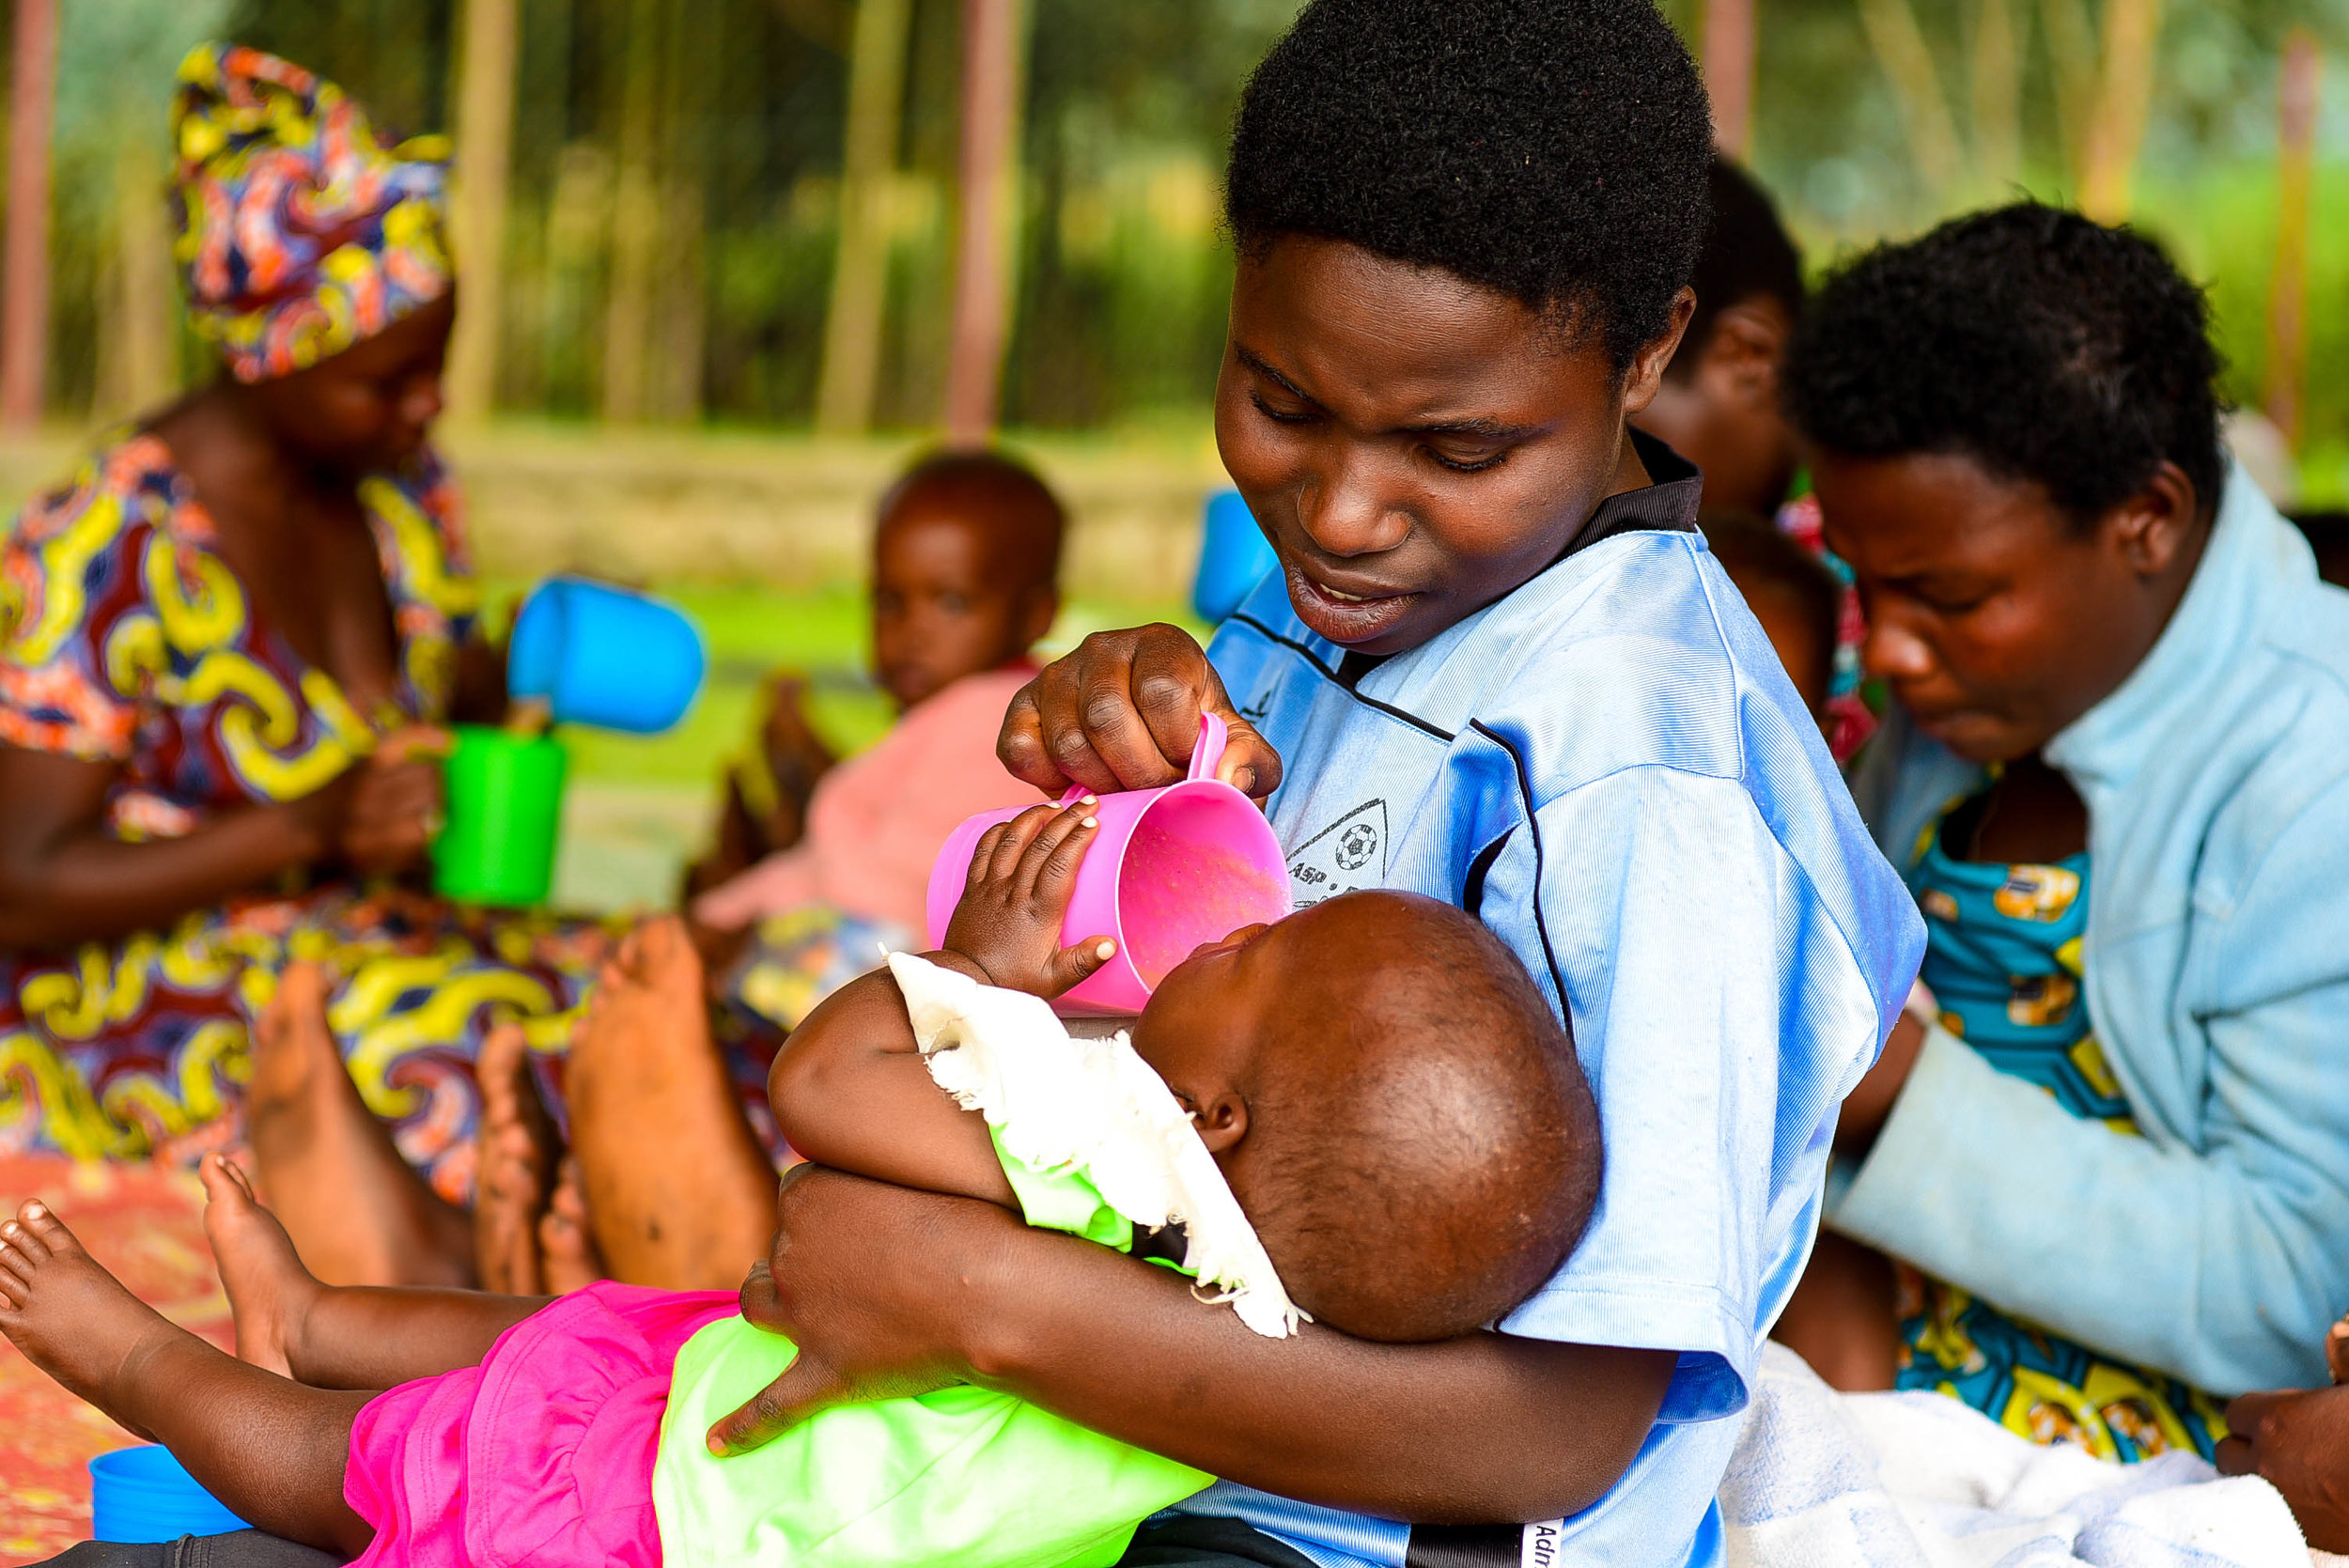 A mother feeds her child Sosoma at a GHI health center training on family planning at the Musanze Health Center in Musanze, Rwanda.